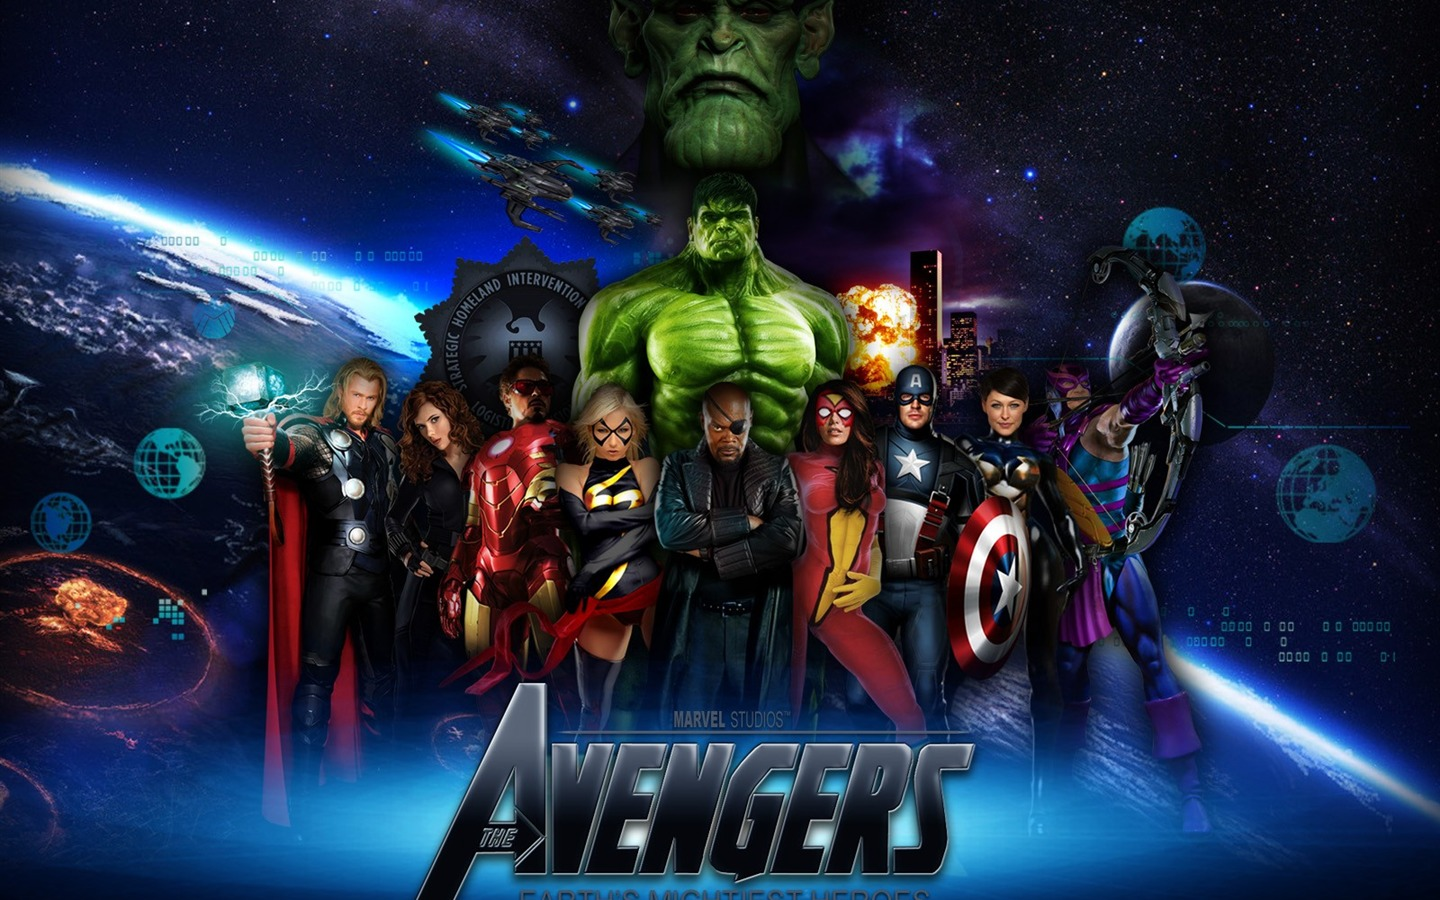 WallpapersWidecom The Avengers HD Desktop Wallpapers for